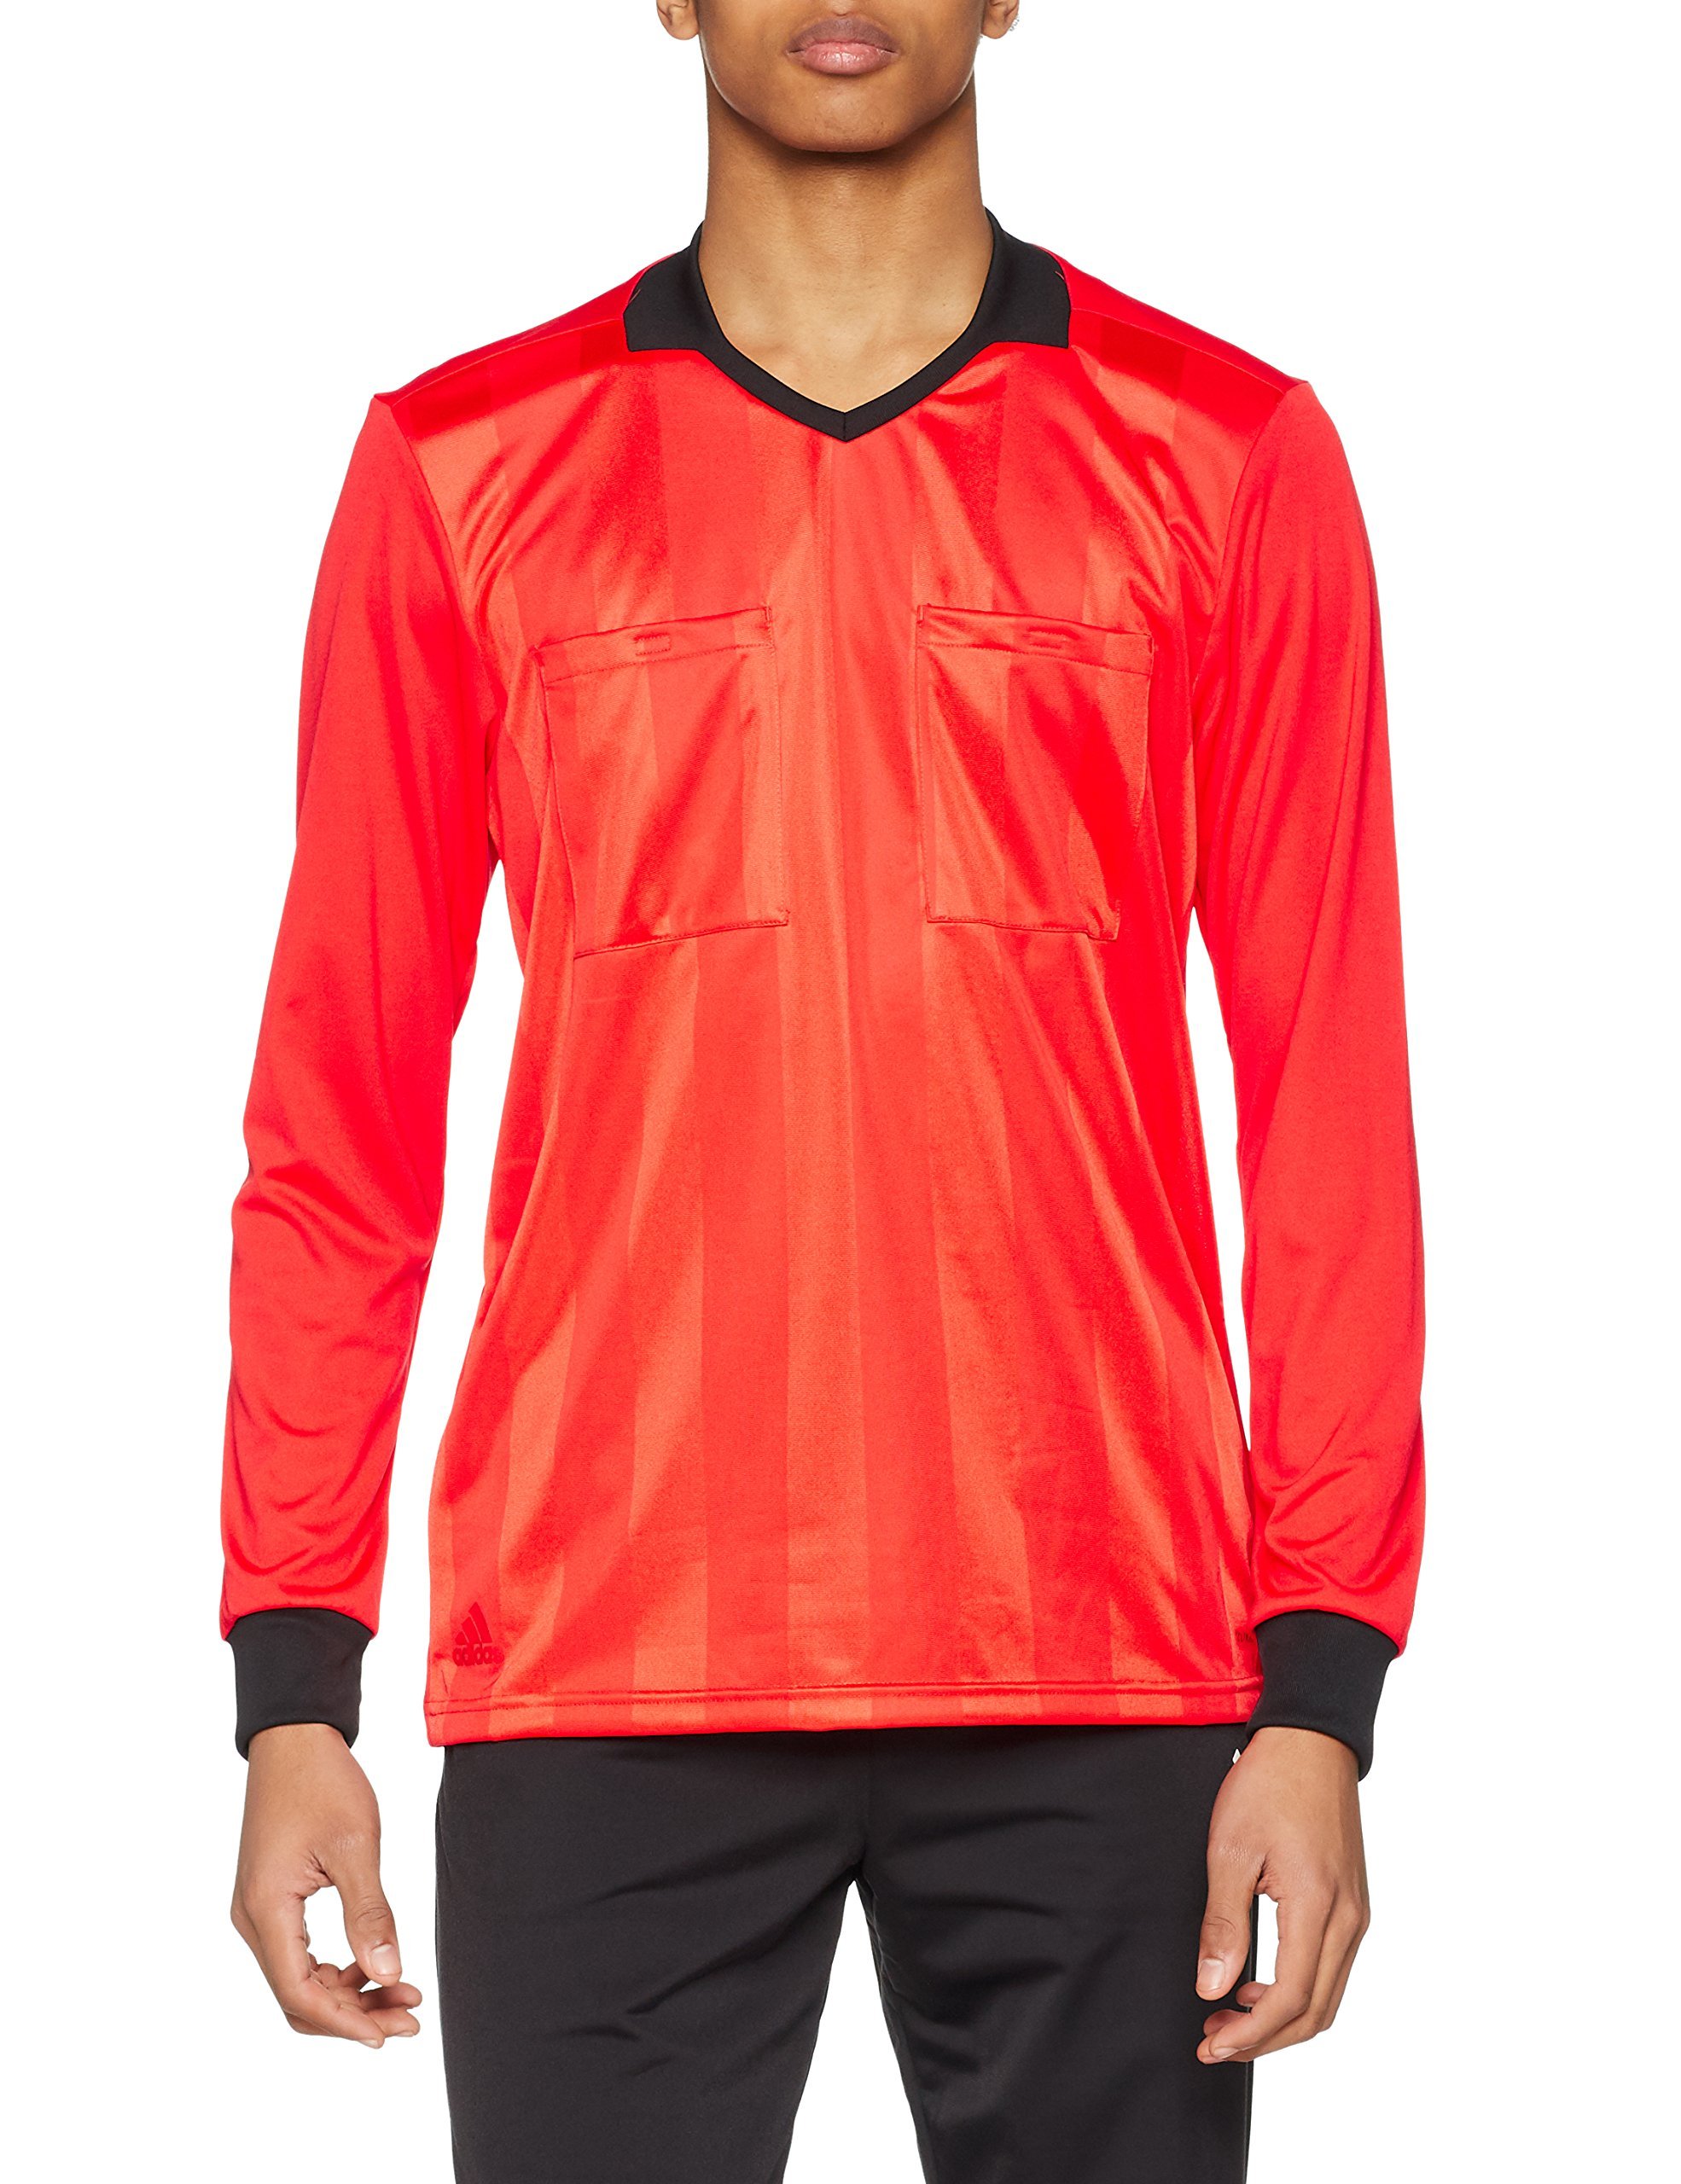 details for competitive price new arrivals Adidas Men's Long-Sleeved Referee DS 1888 Jersey Referee 18